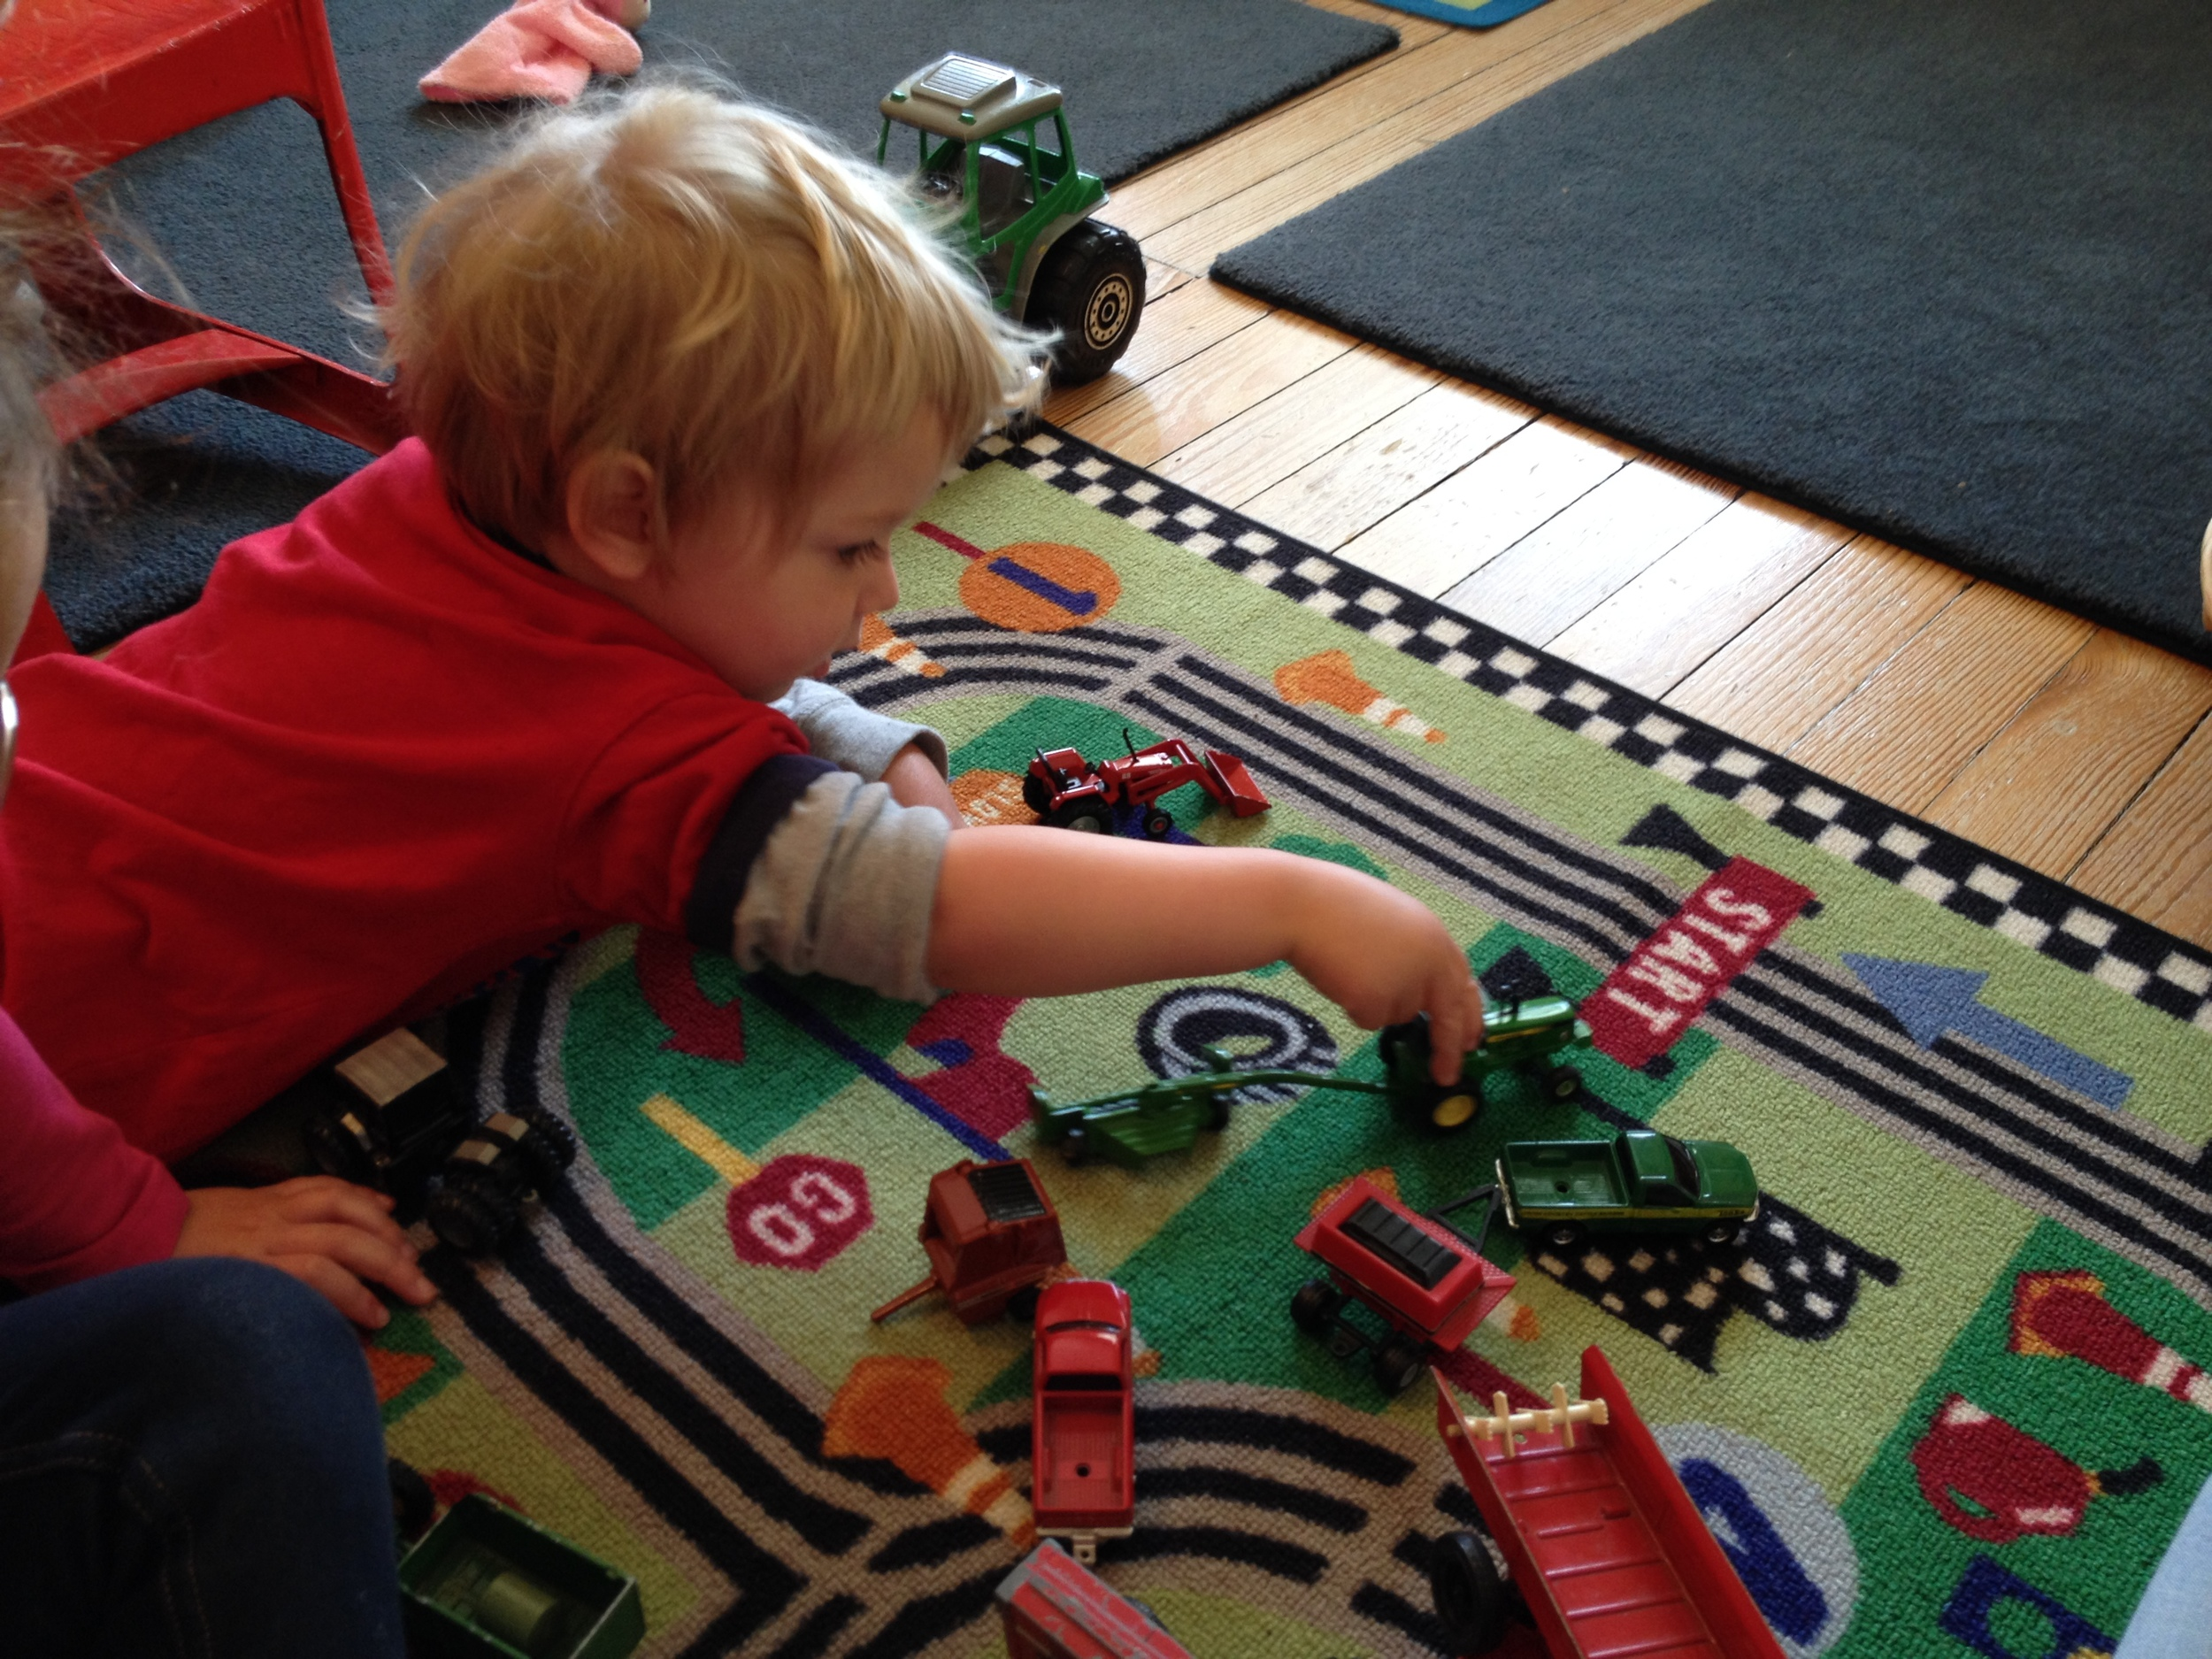 Fun with tractors and other farm equipment